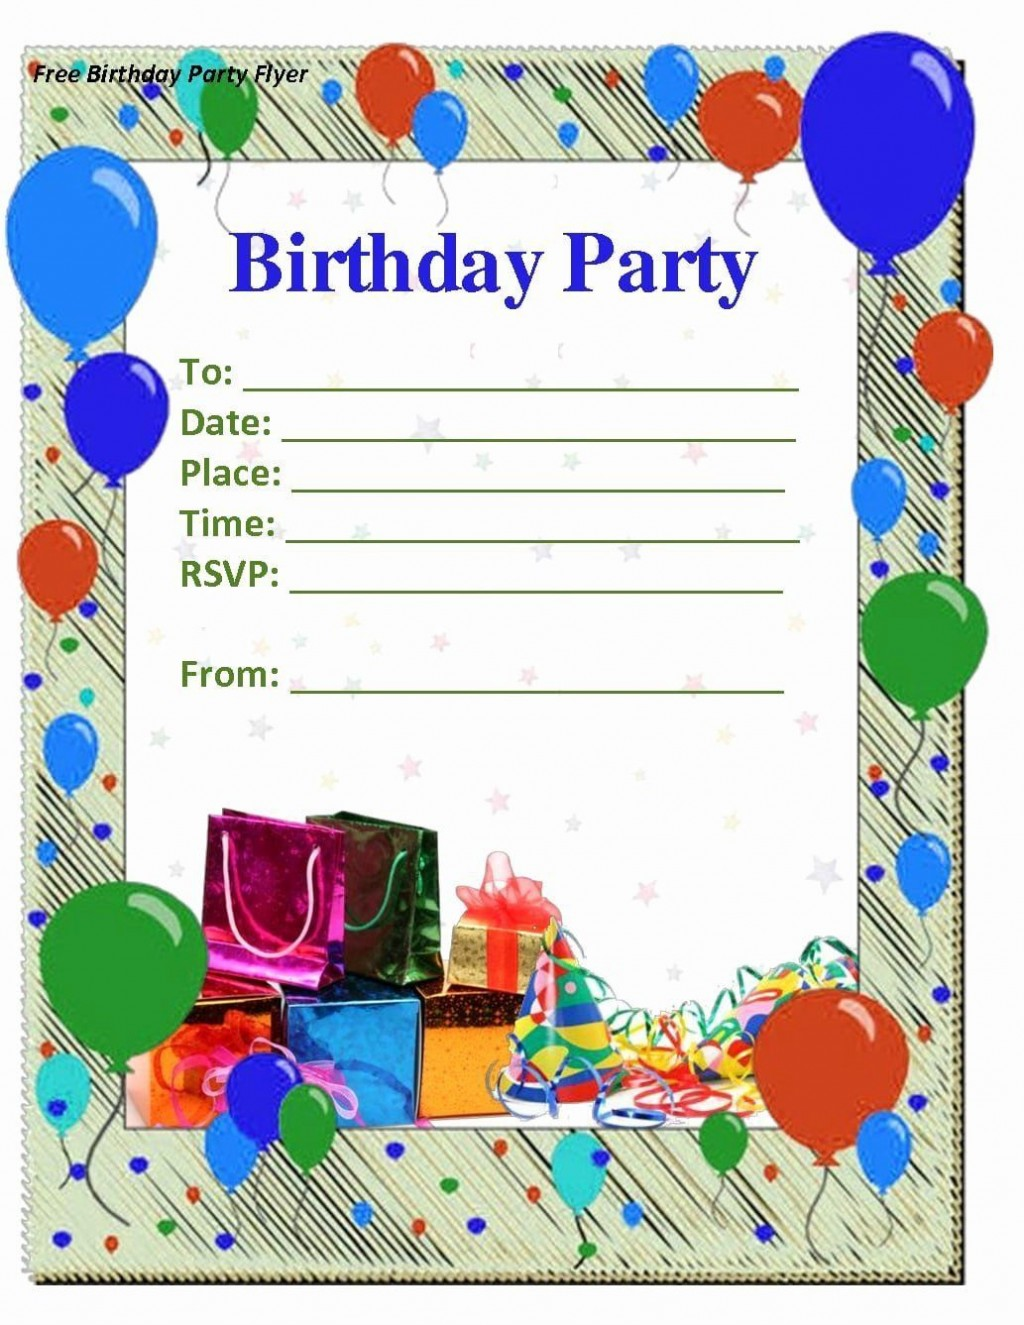 000 Unique Birthday Party Invitation Template Word High Resolution  40th Wording Sample Unicorn FreeLarge